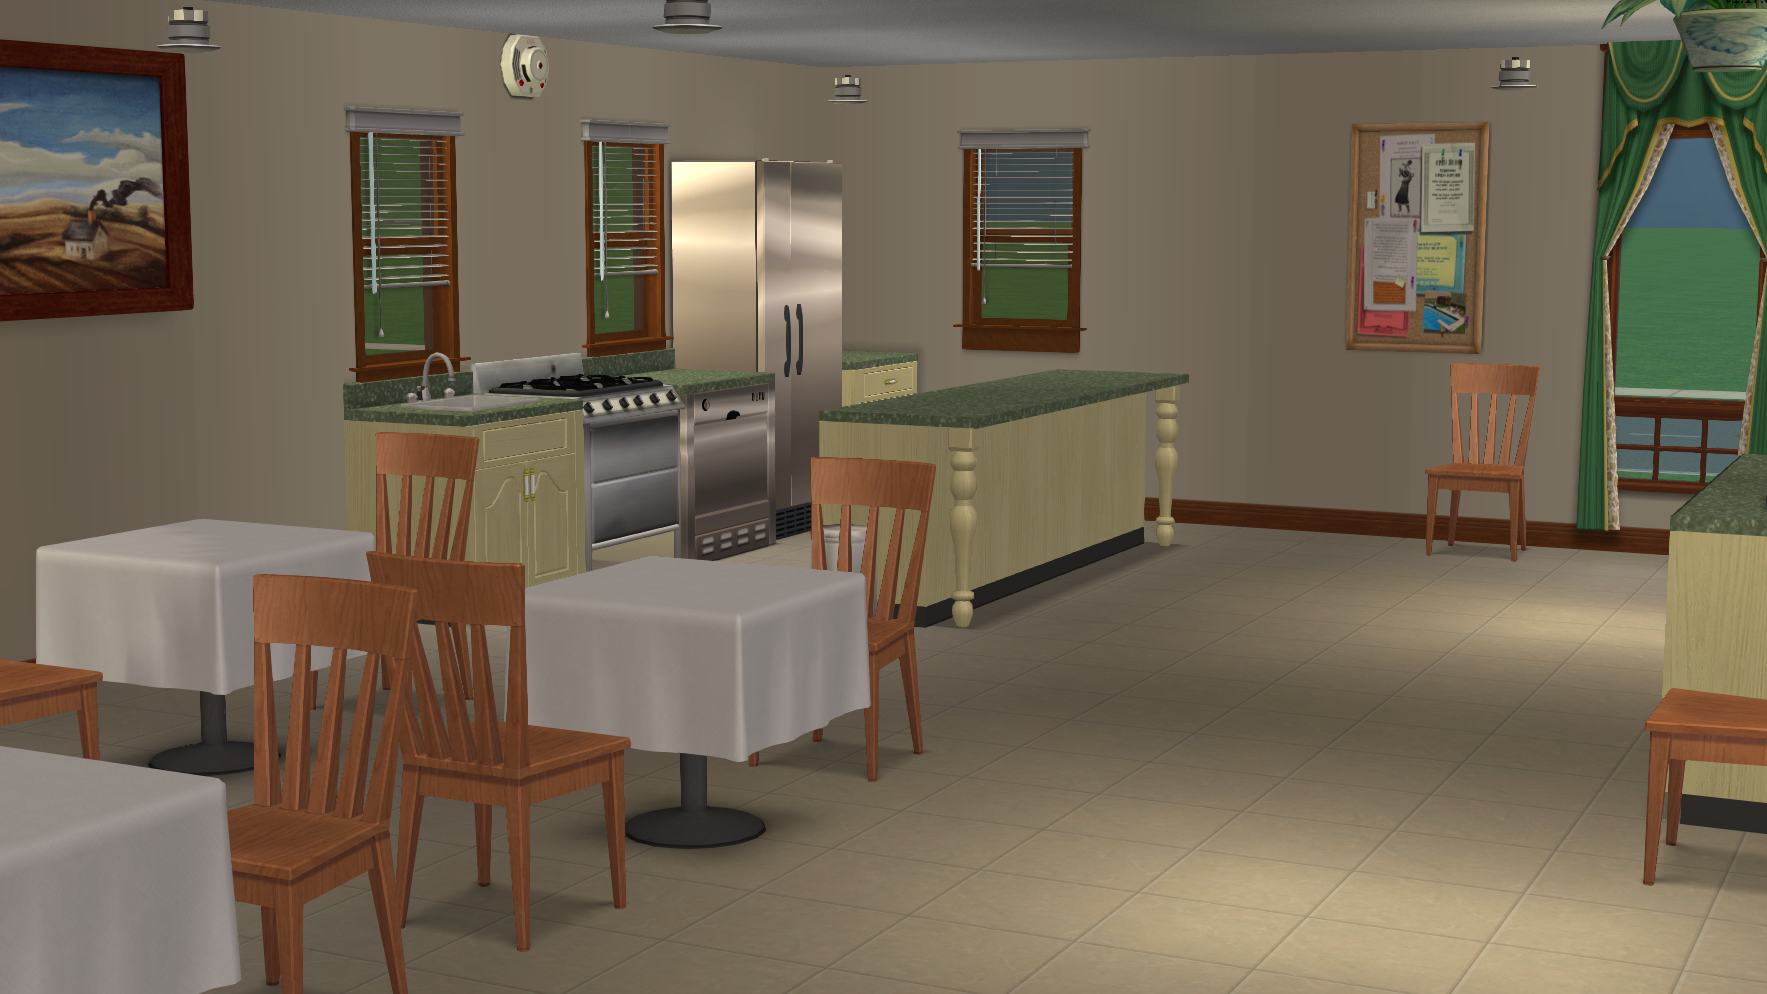 Retirement Home Kitchen